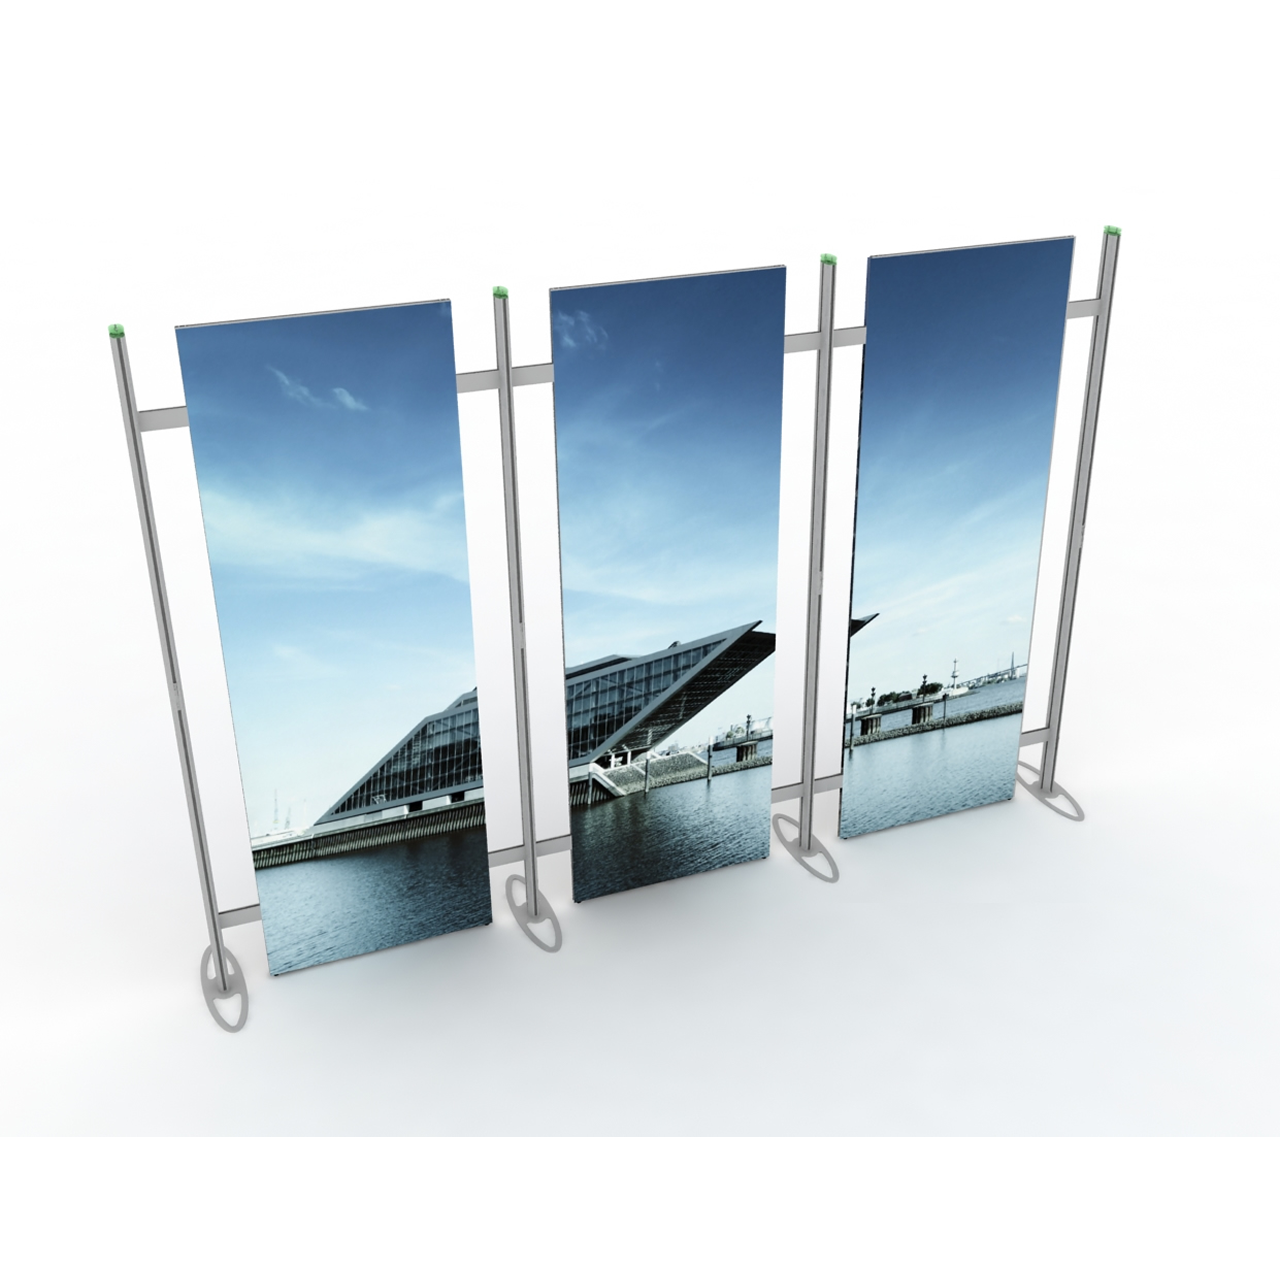 Modular Exhibition Stands Election : Ml metrolite modular display exhibition stands